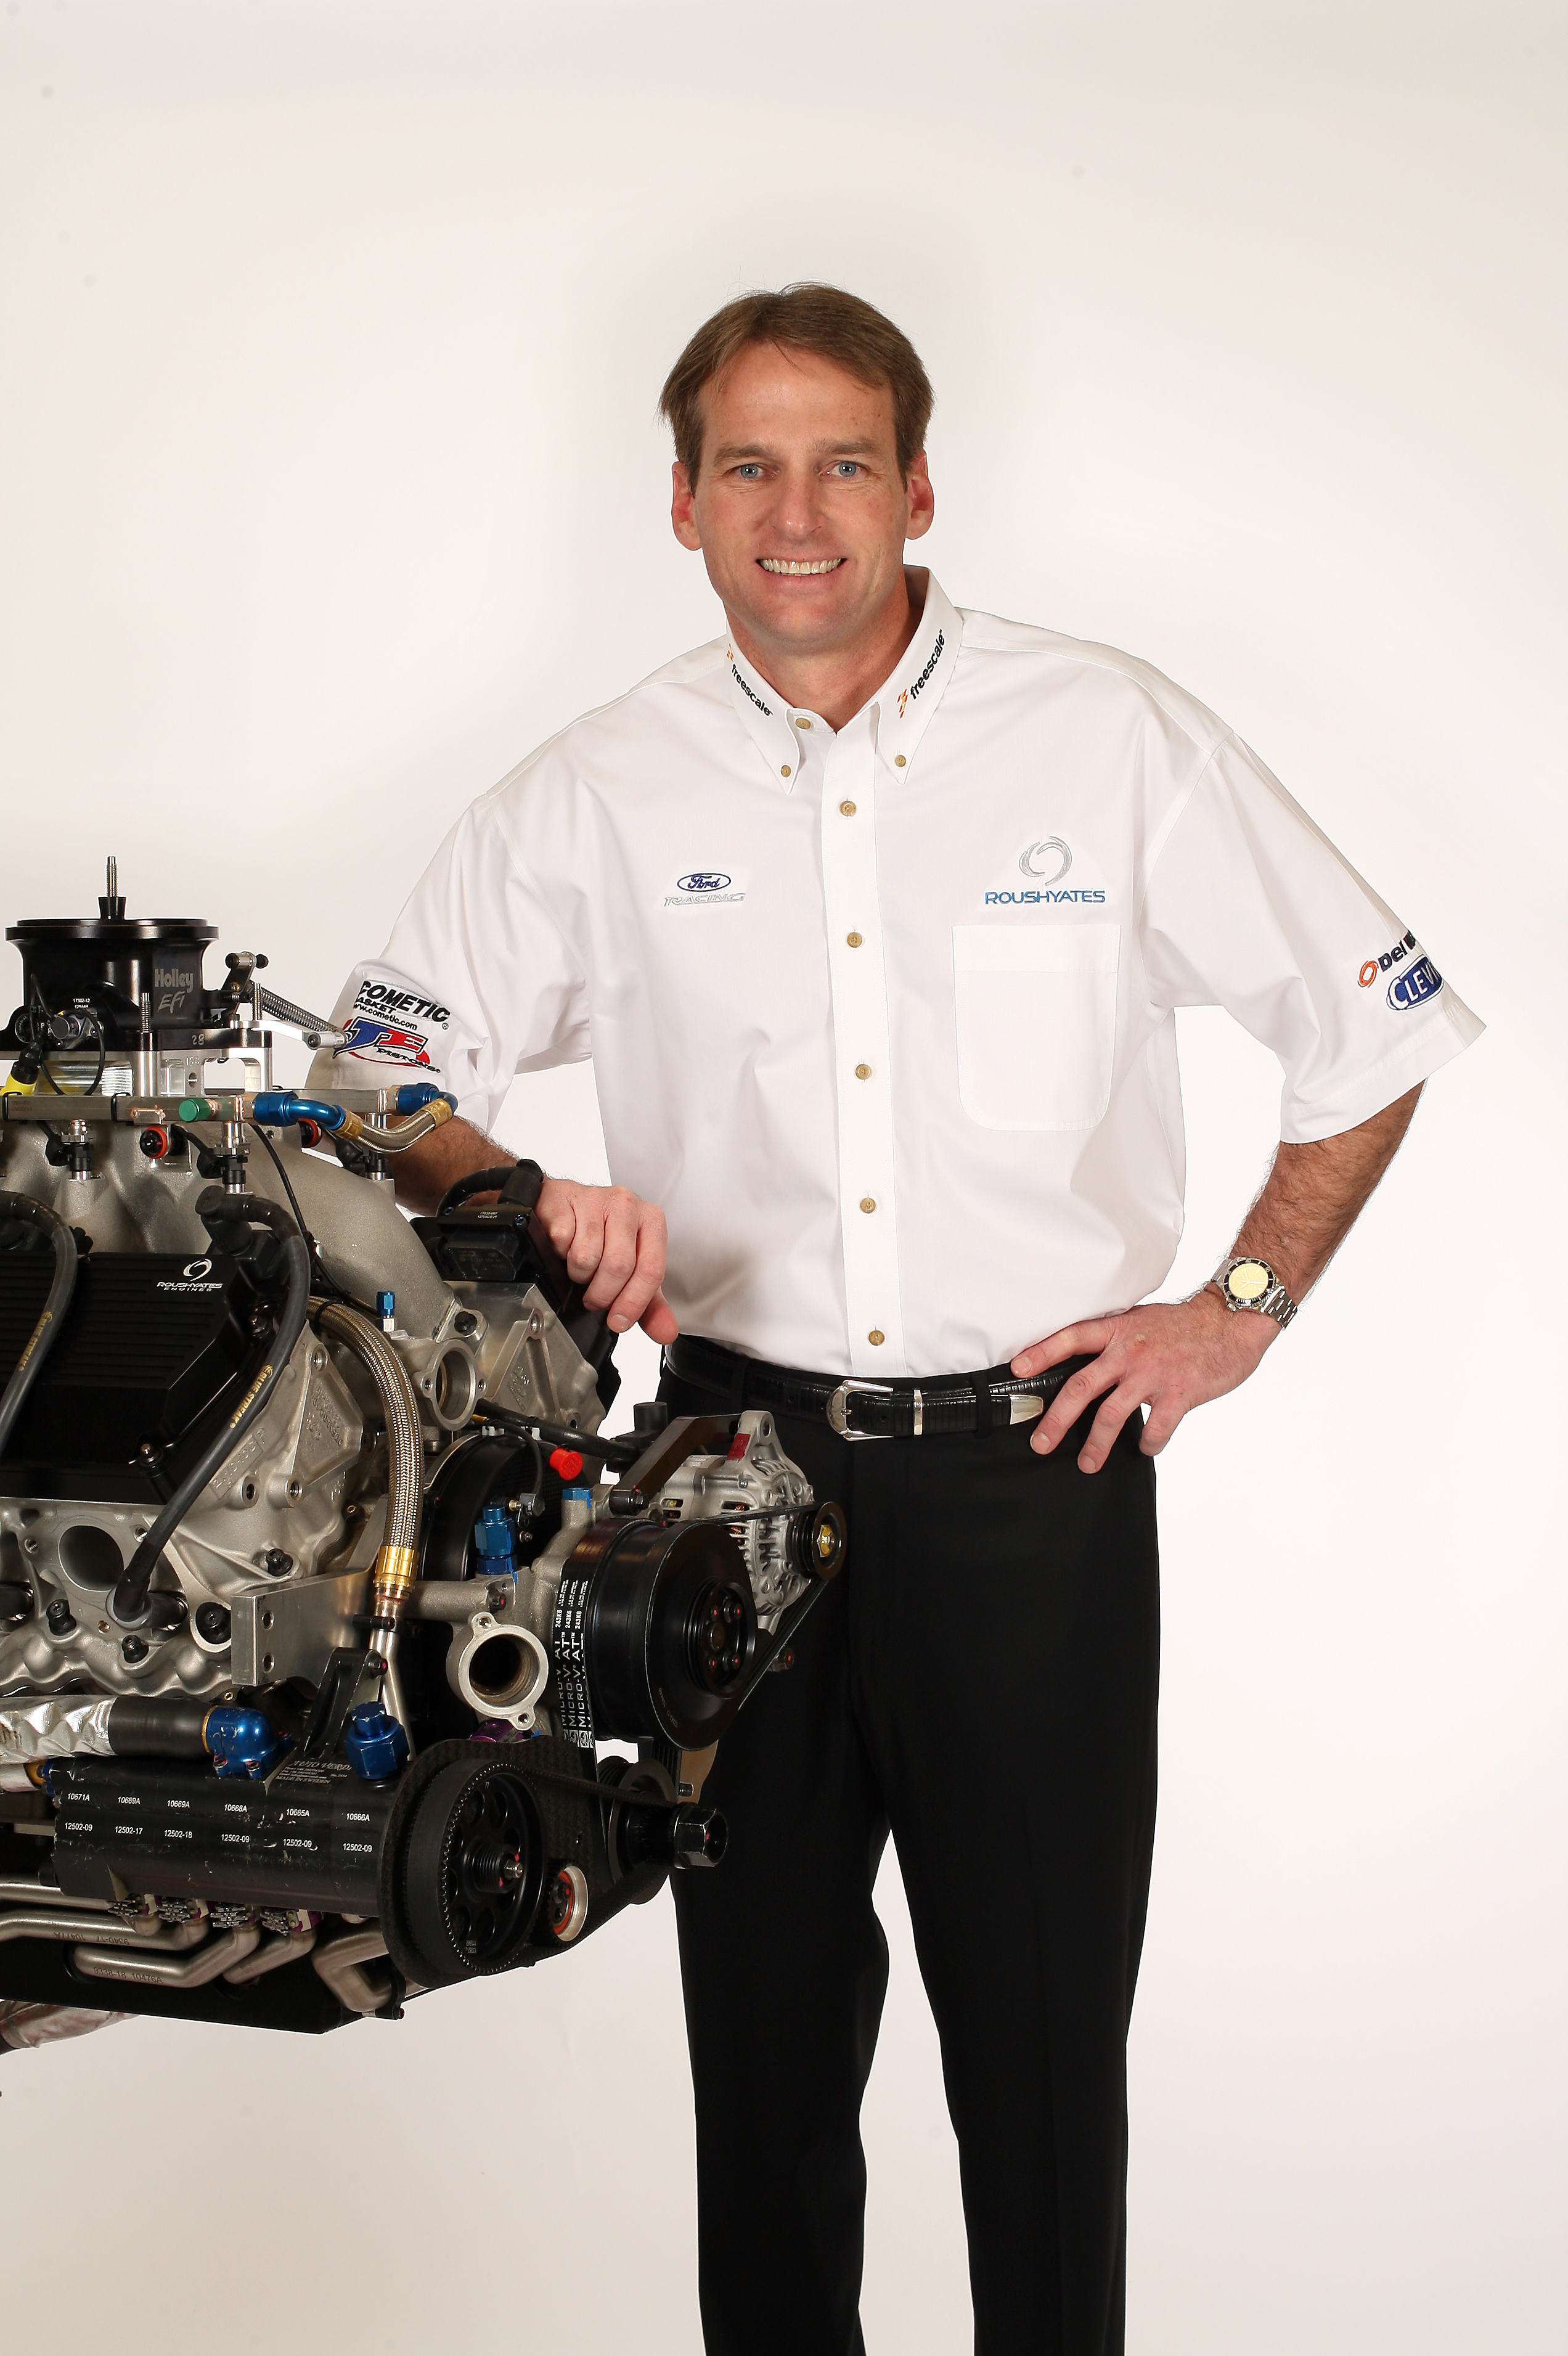 MAHLE Clevite will feature Doug Yates at PRI Show